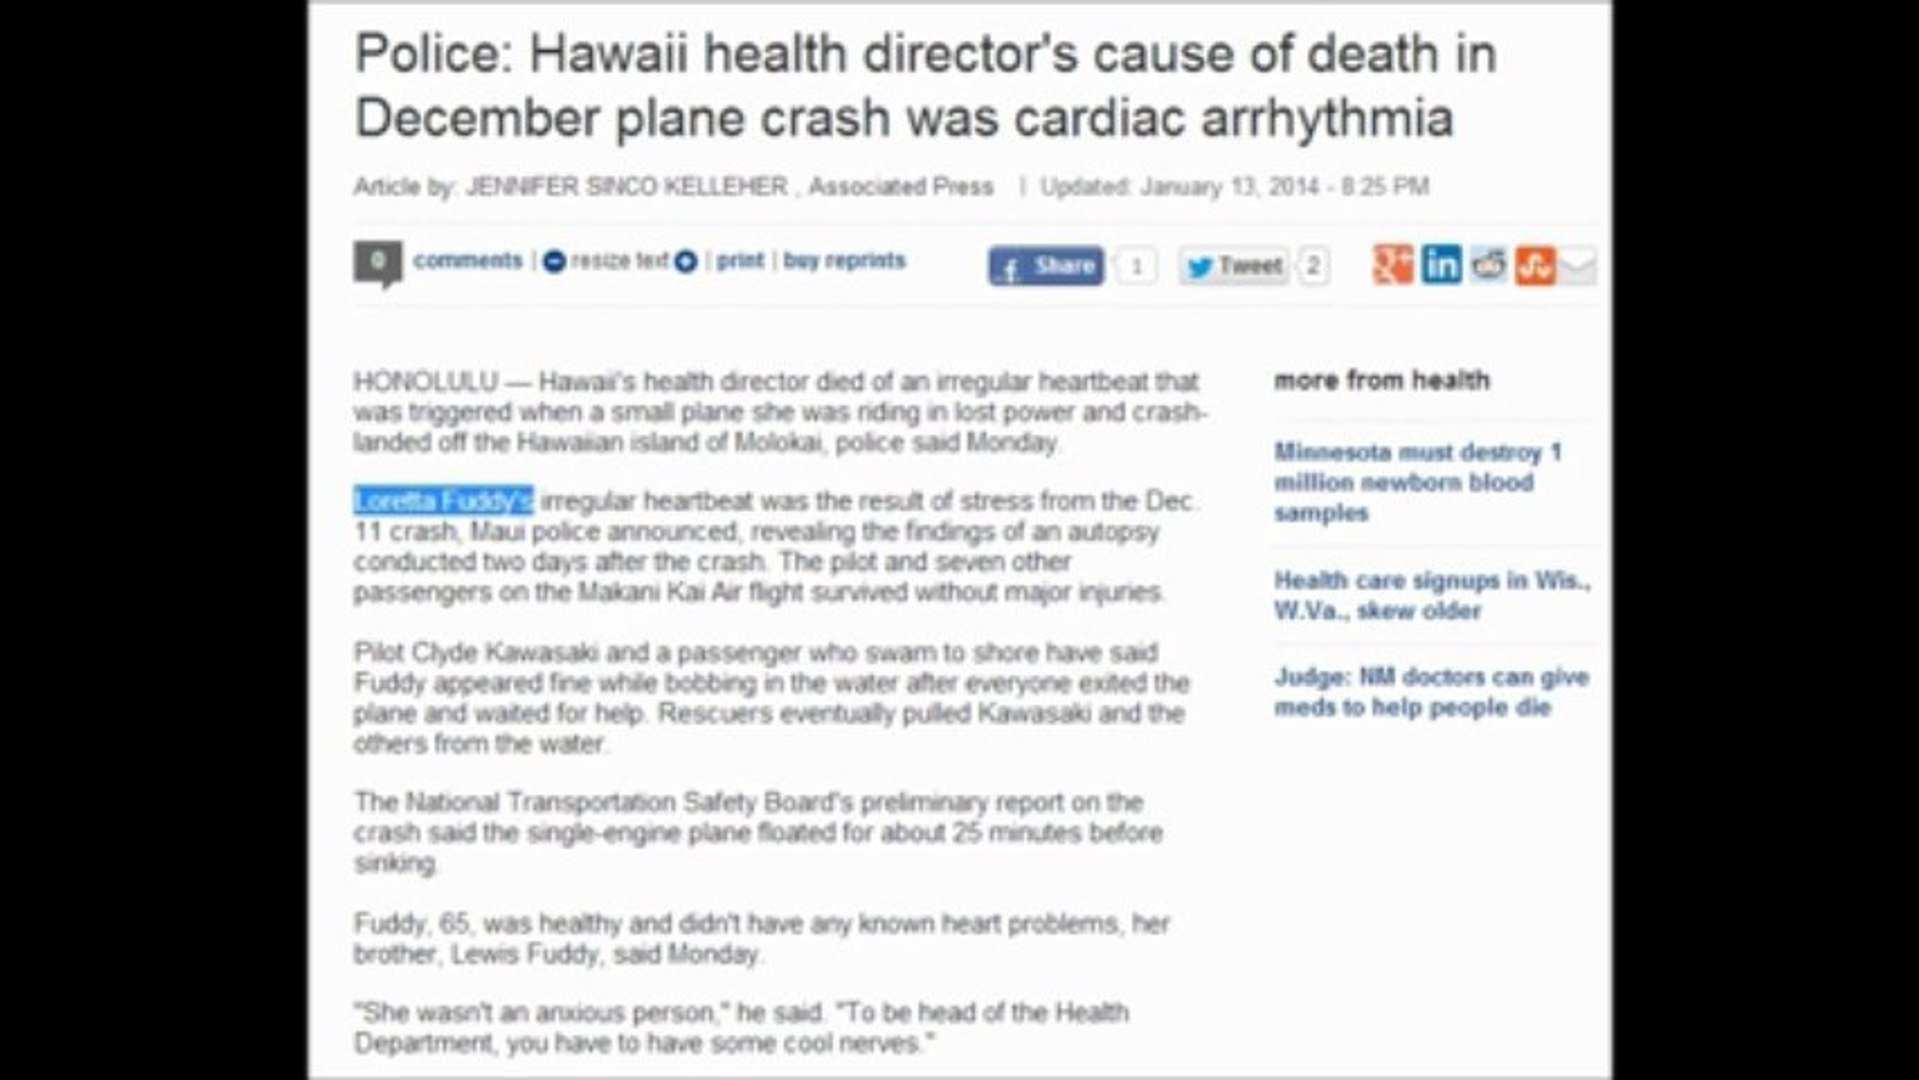 ALERT NEWS Loretta Fuddy who released Obama's Hawaii birth certificate died  after plane crash from stress